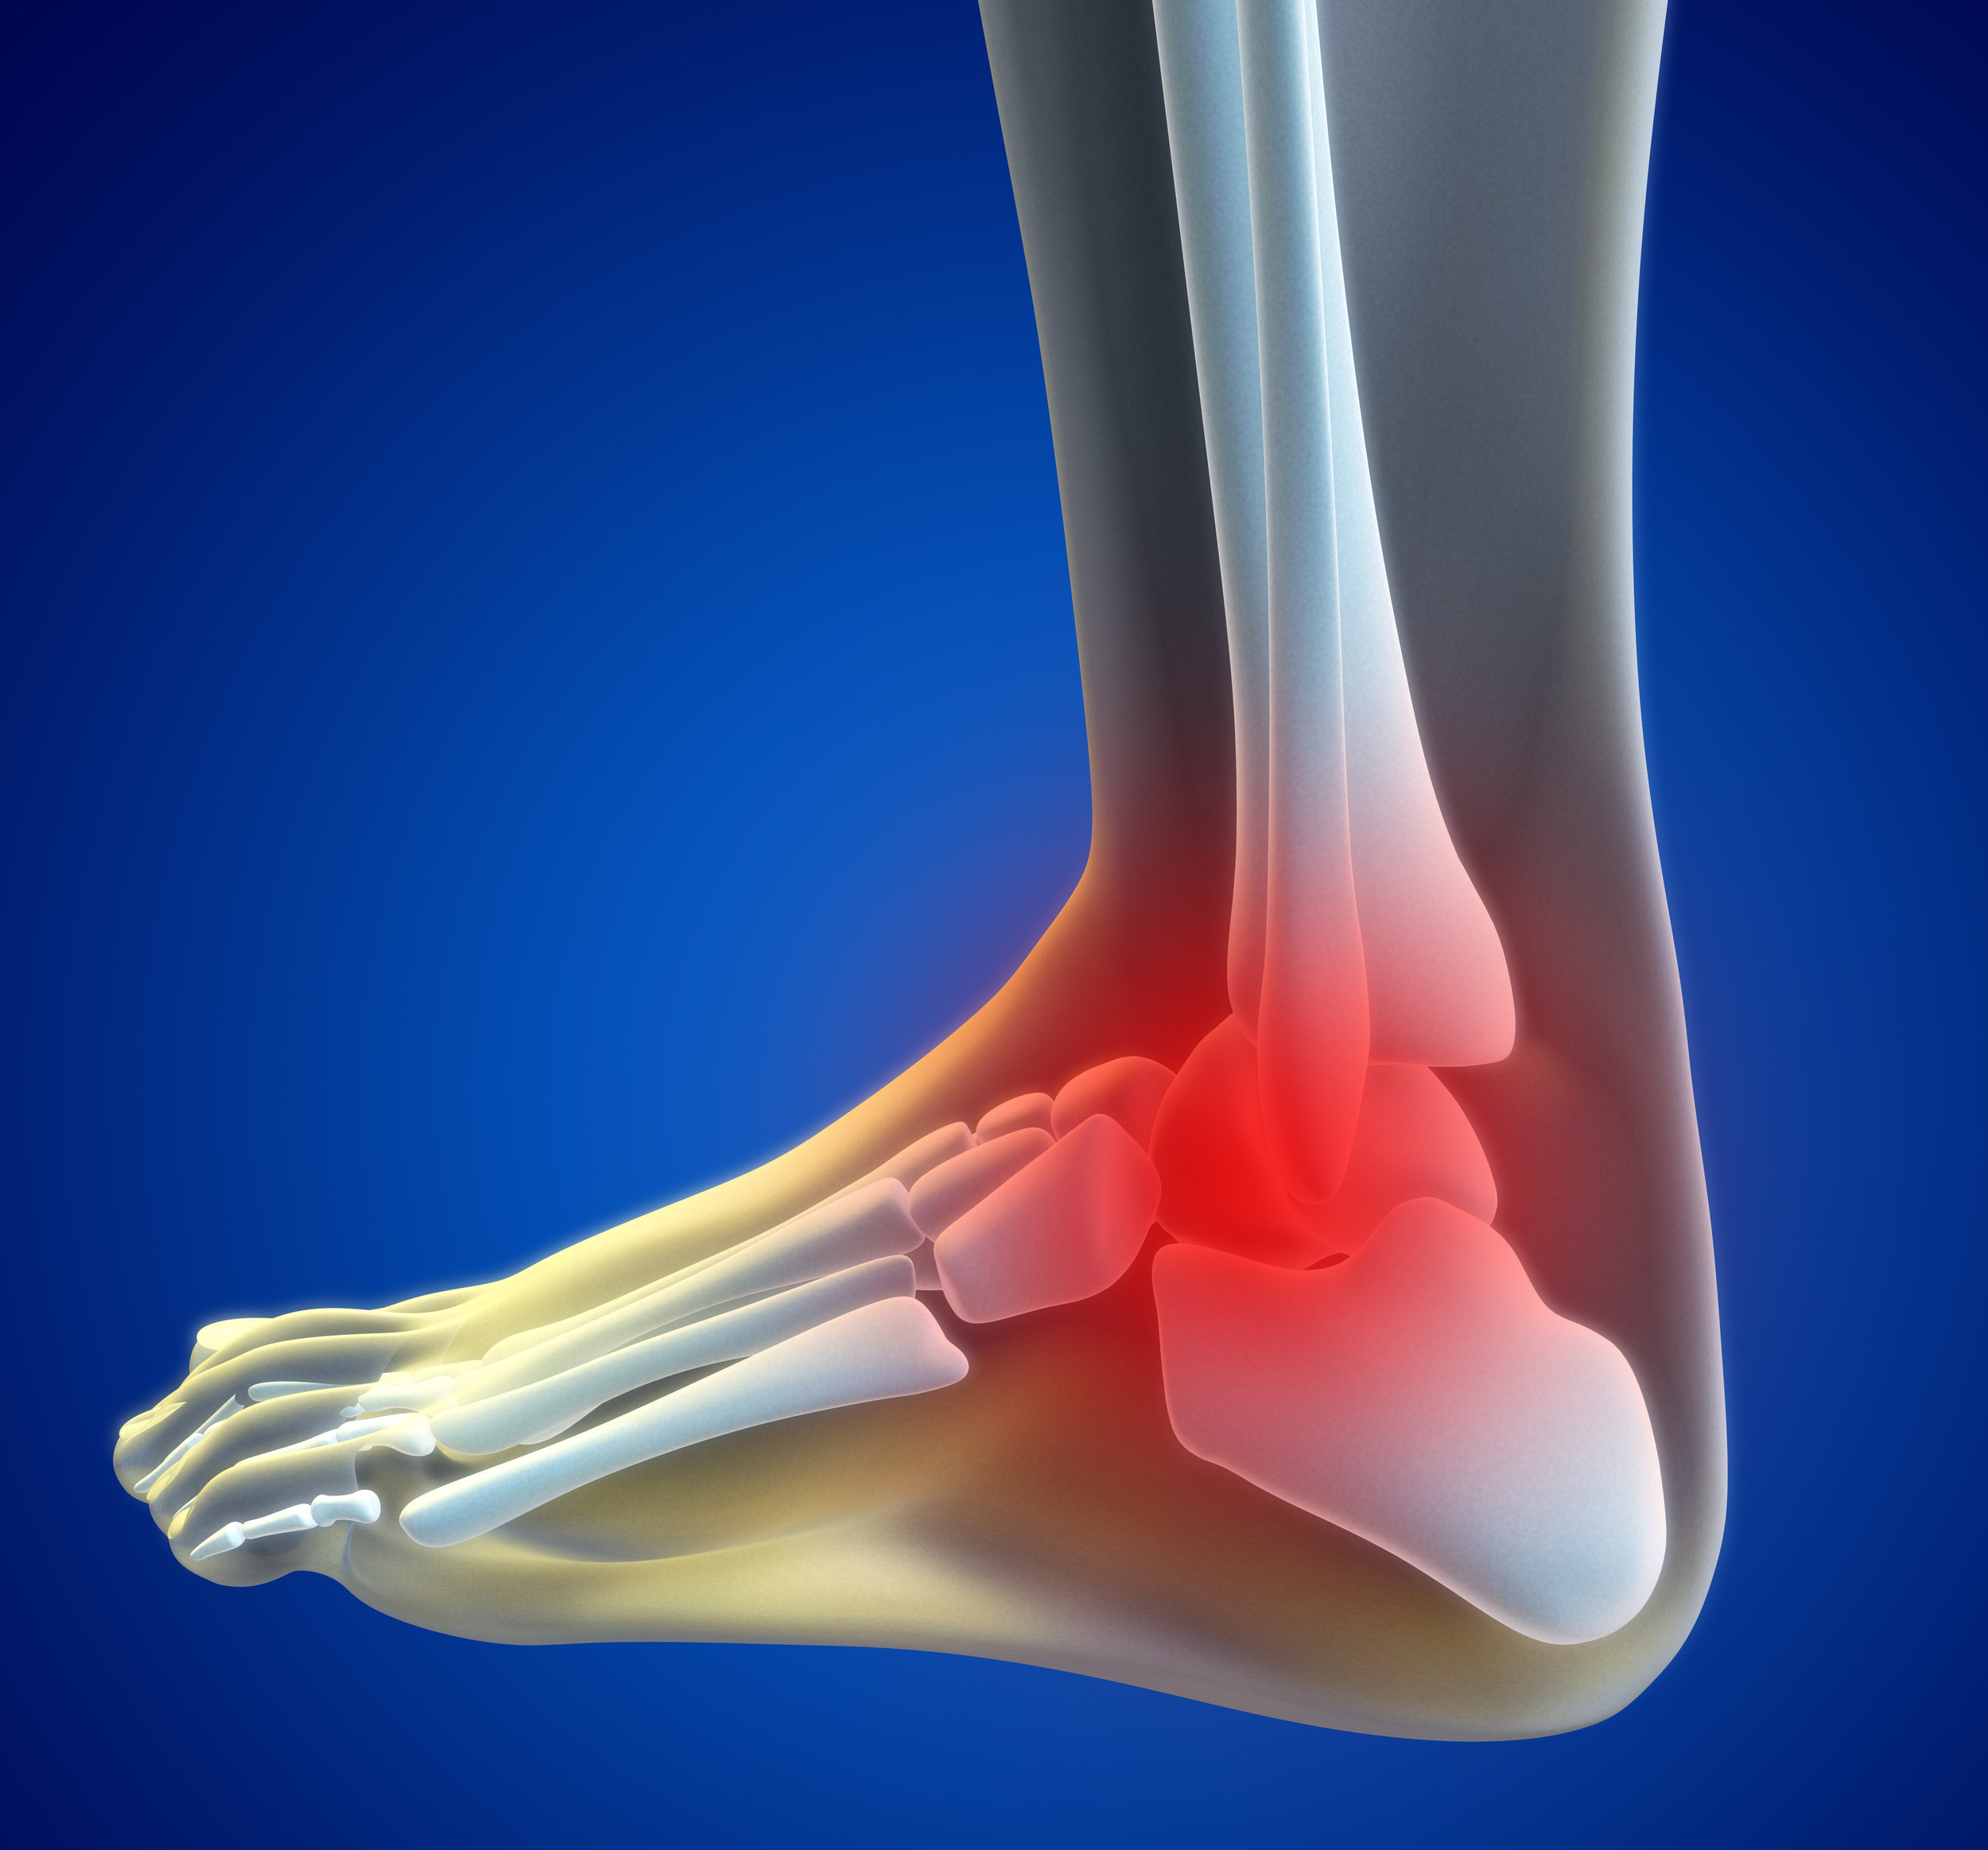 sprain ankle specialist valley stream ny foot ankle doctor